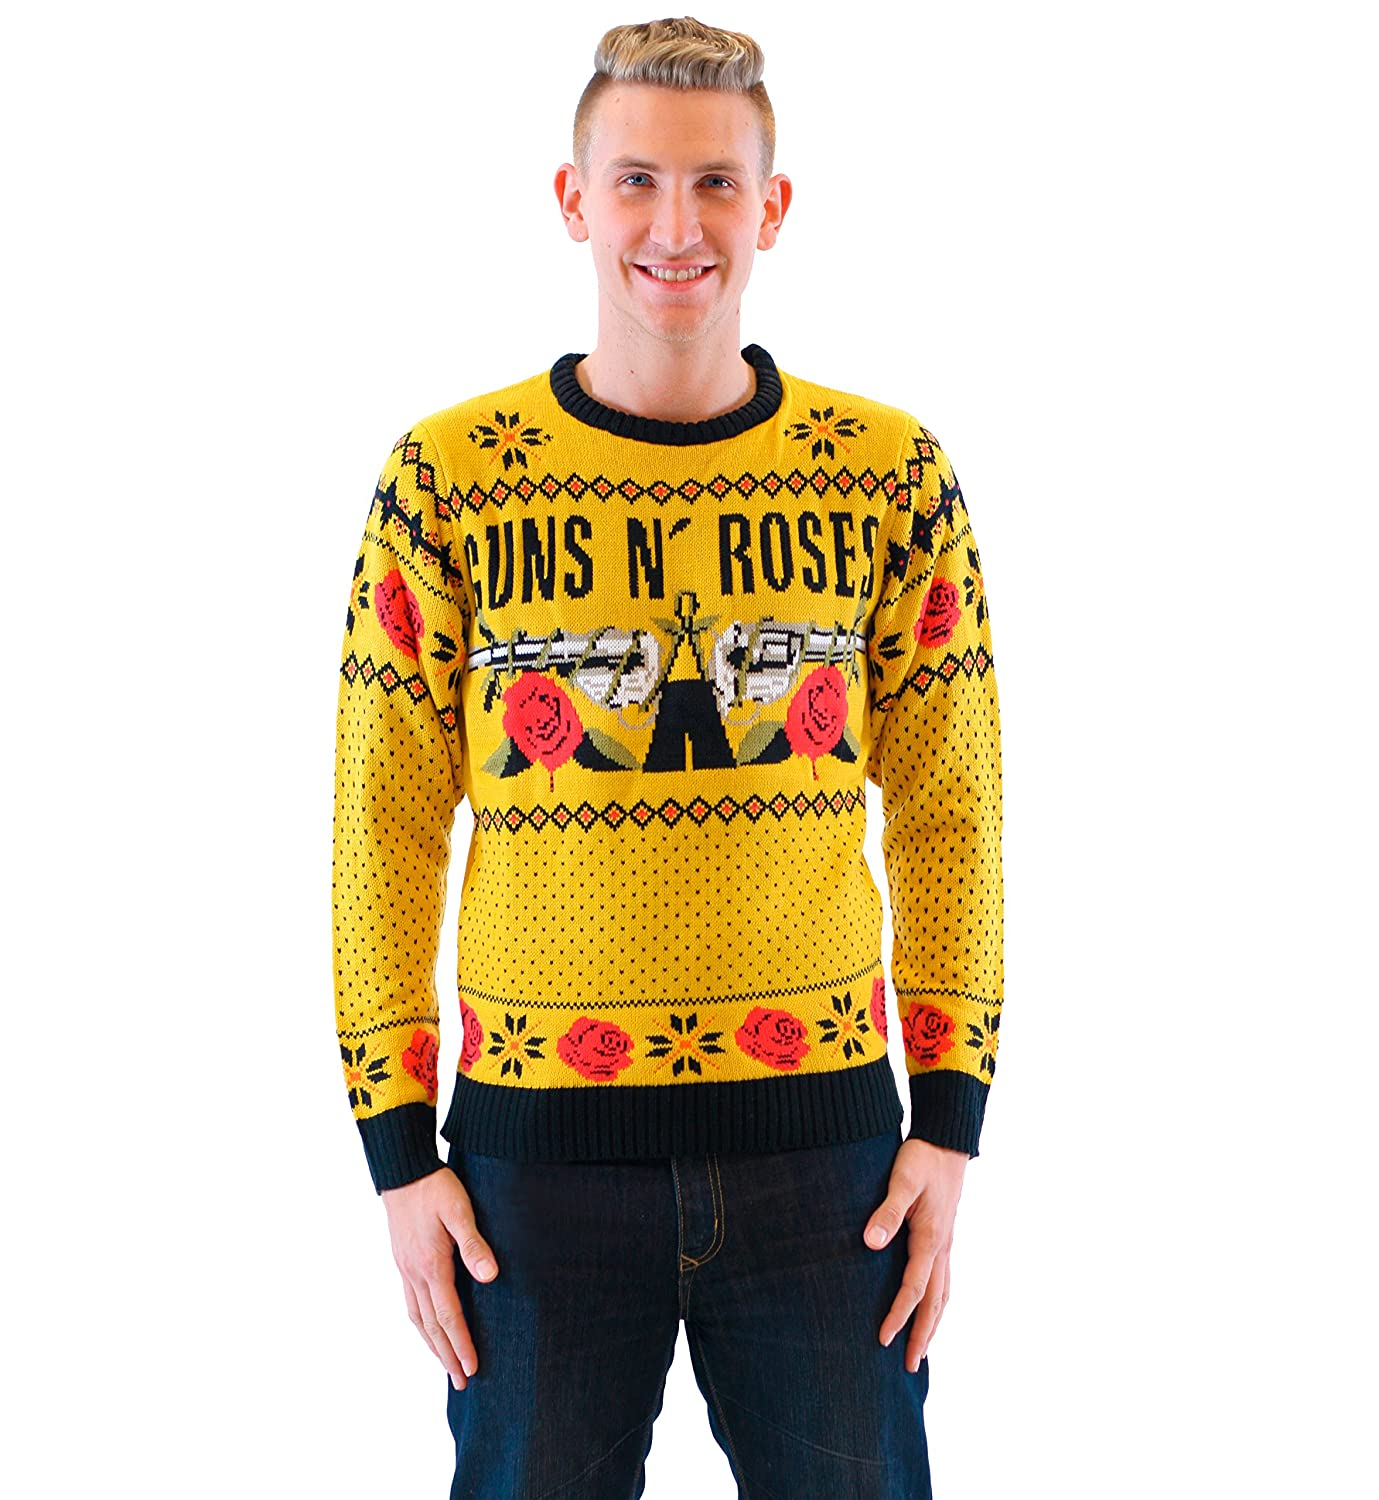 Guns N' Roses Text Ugly Christmas Sweater